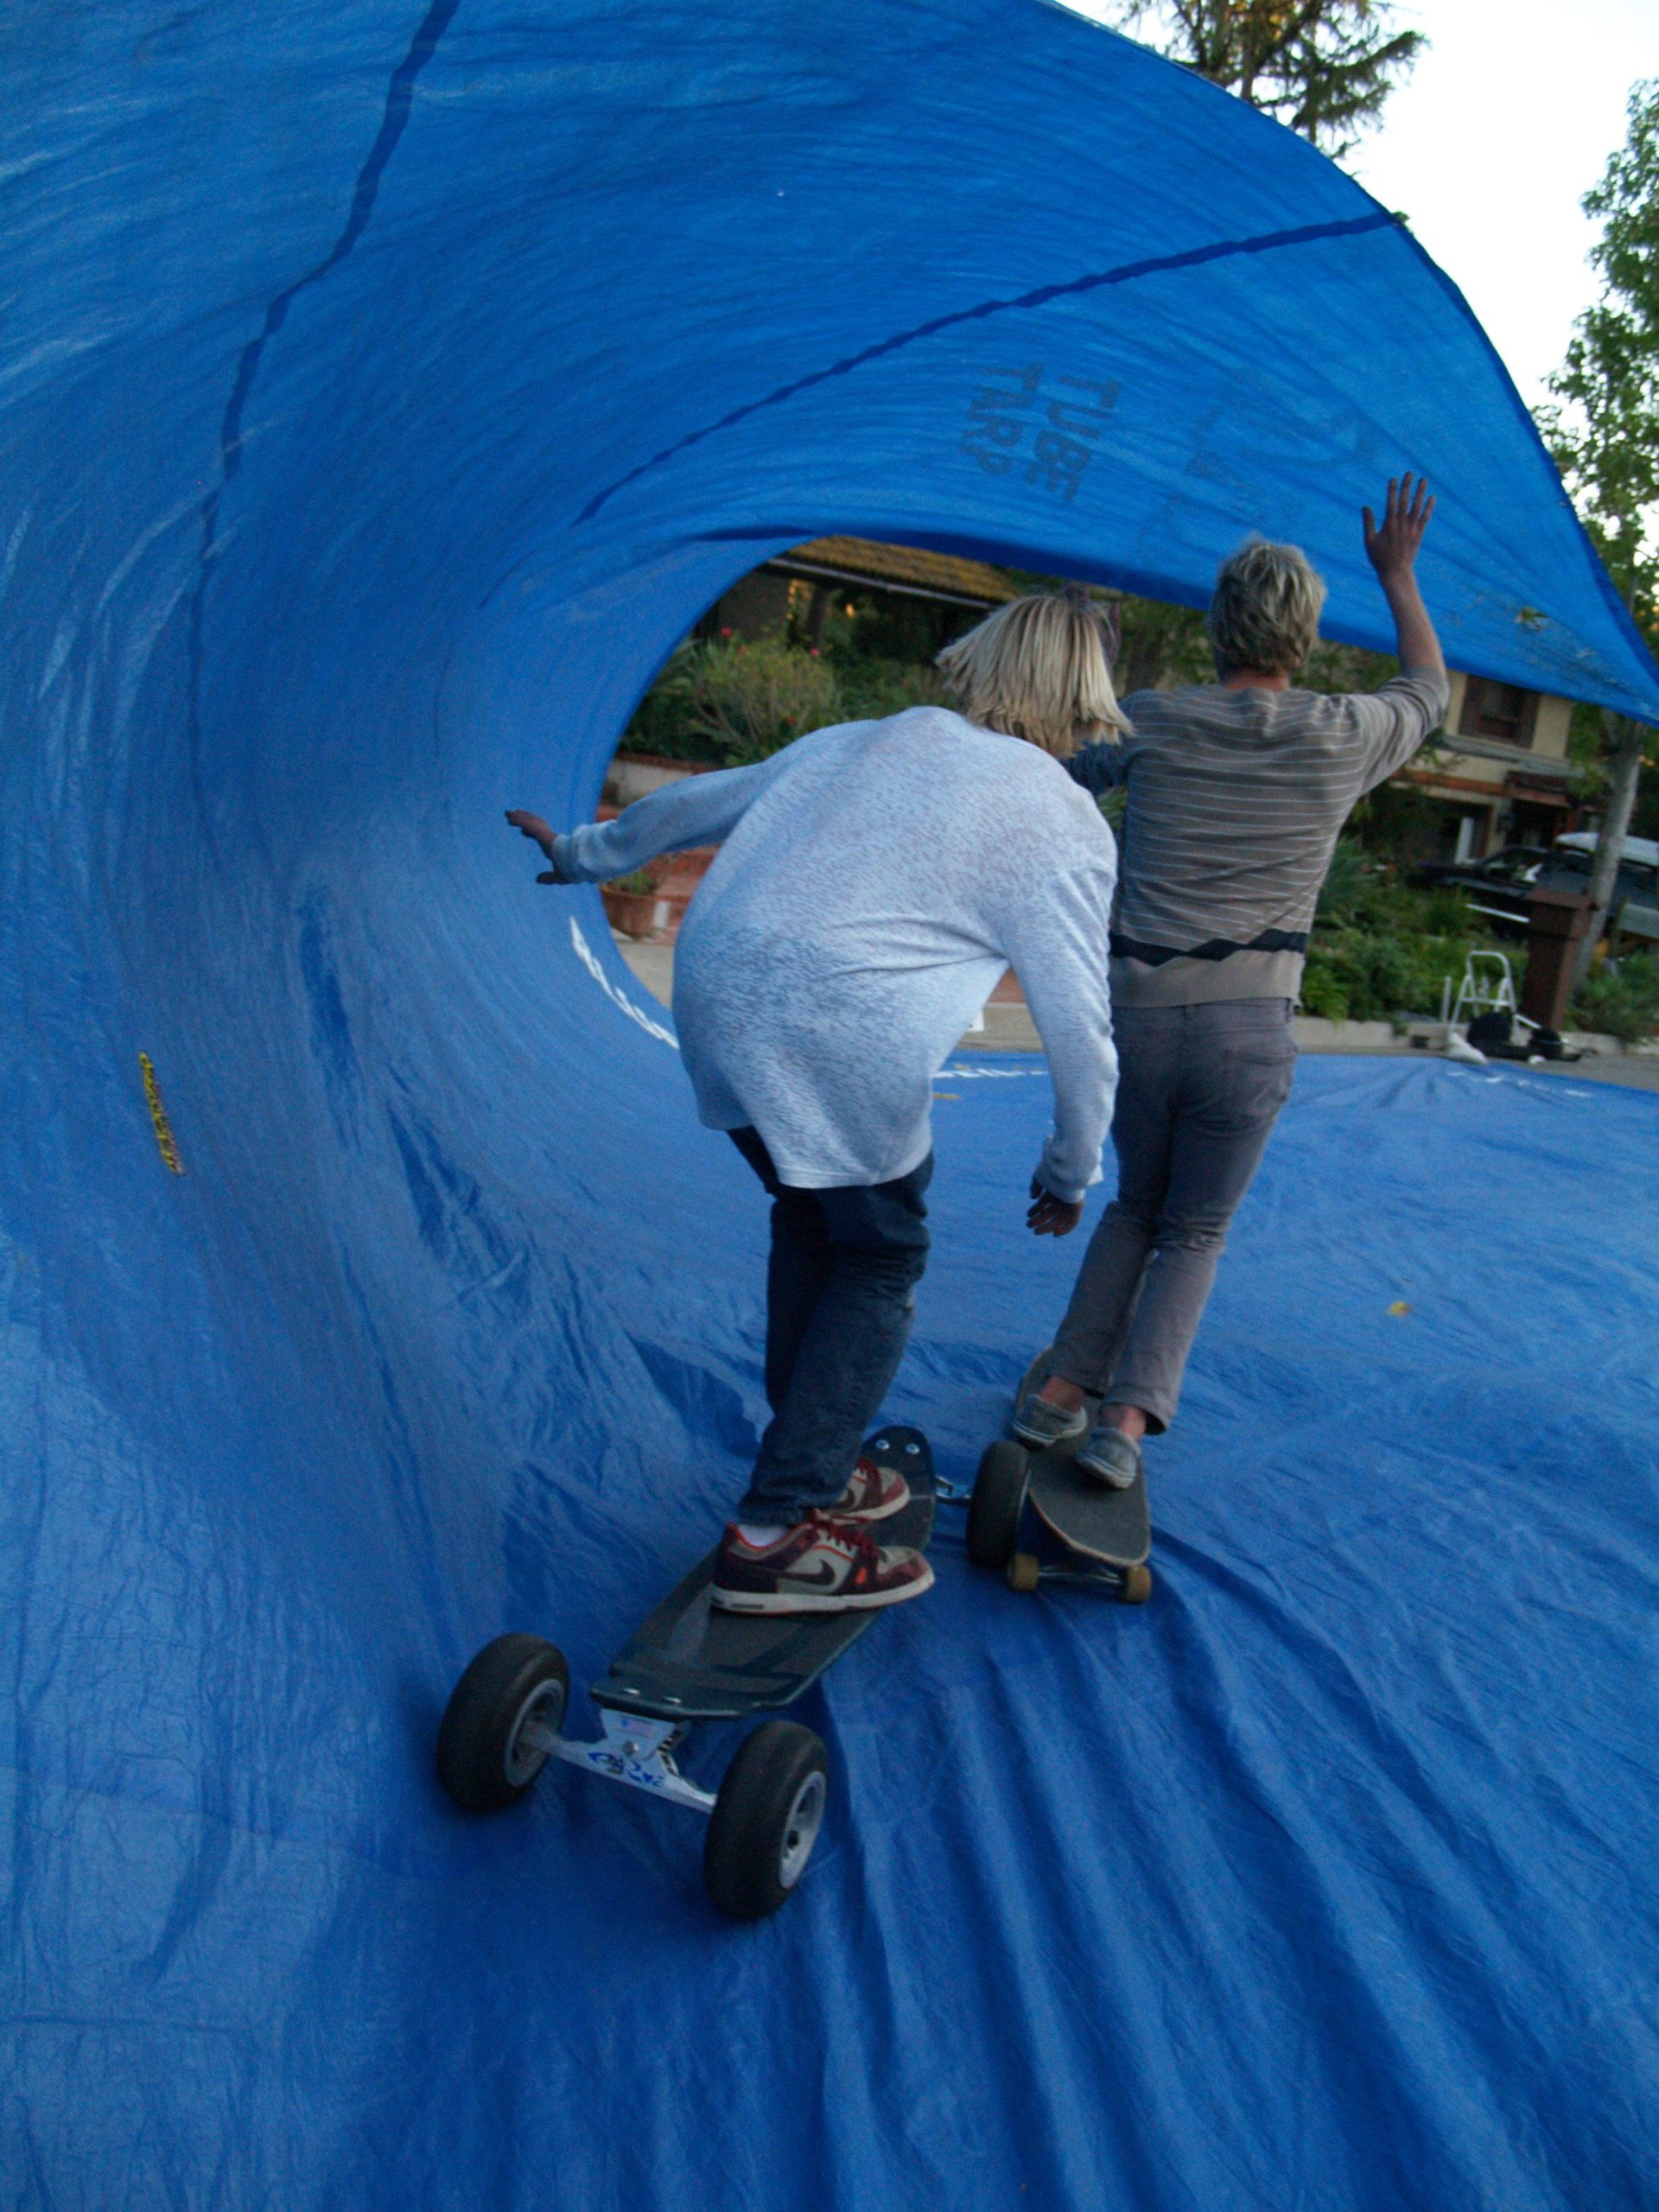 Tarp Surfing 2 At A Time